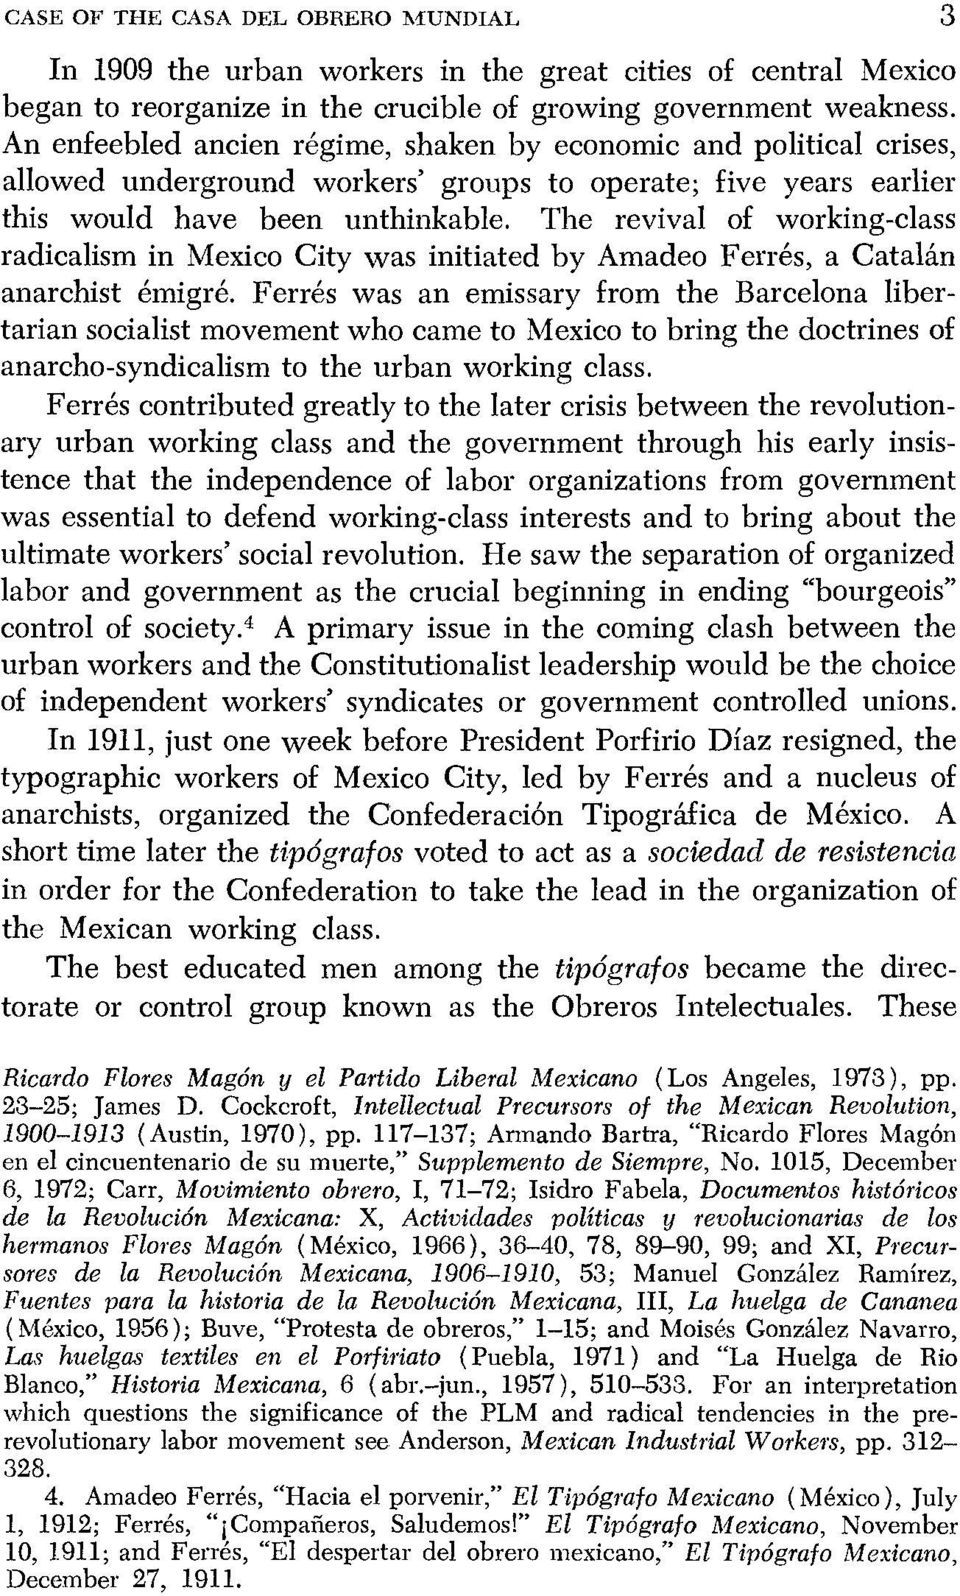 The revival of working-class radicalism in Mexico City was initiated by Amadeo Ferres, a Catalan anarchist e6migre.